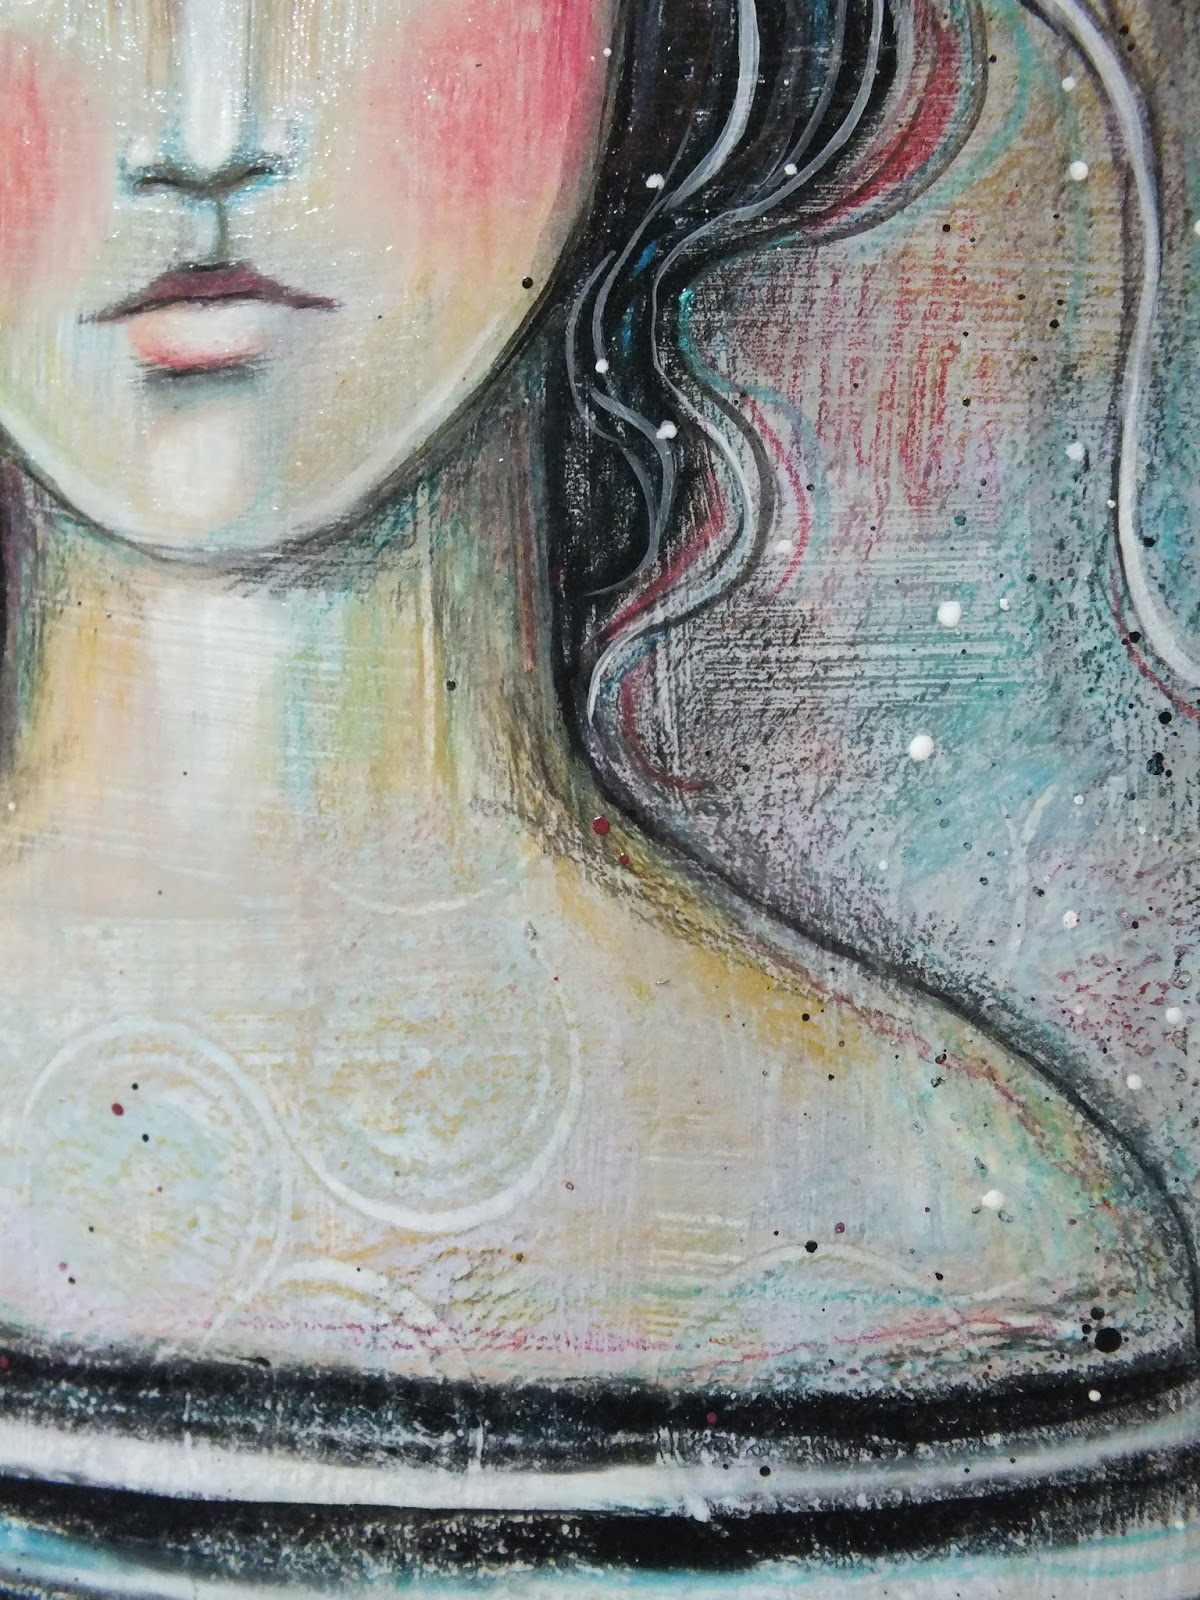 Pencil And In Color Drawing: Pennystamper: New Acrylic And Colored Pencil Painting